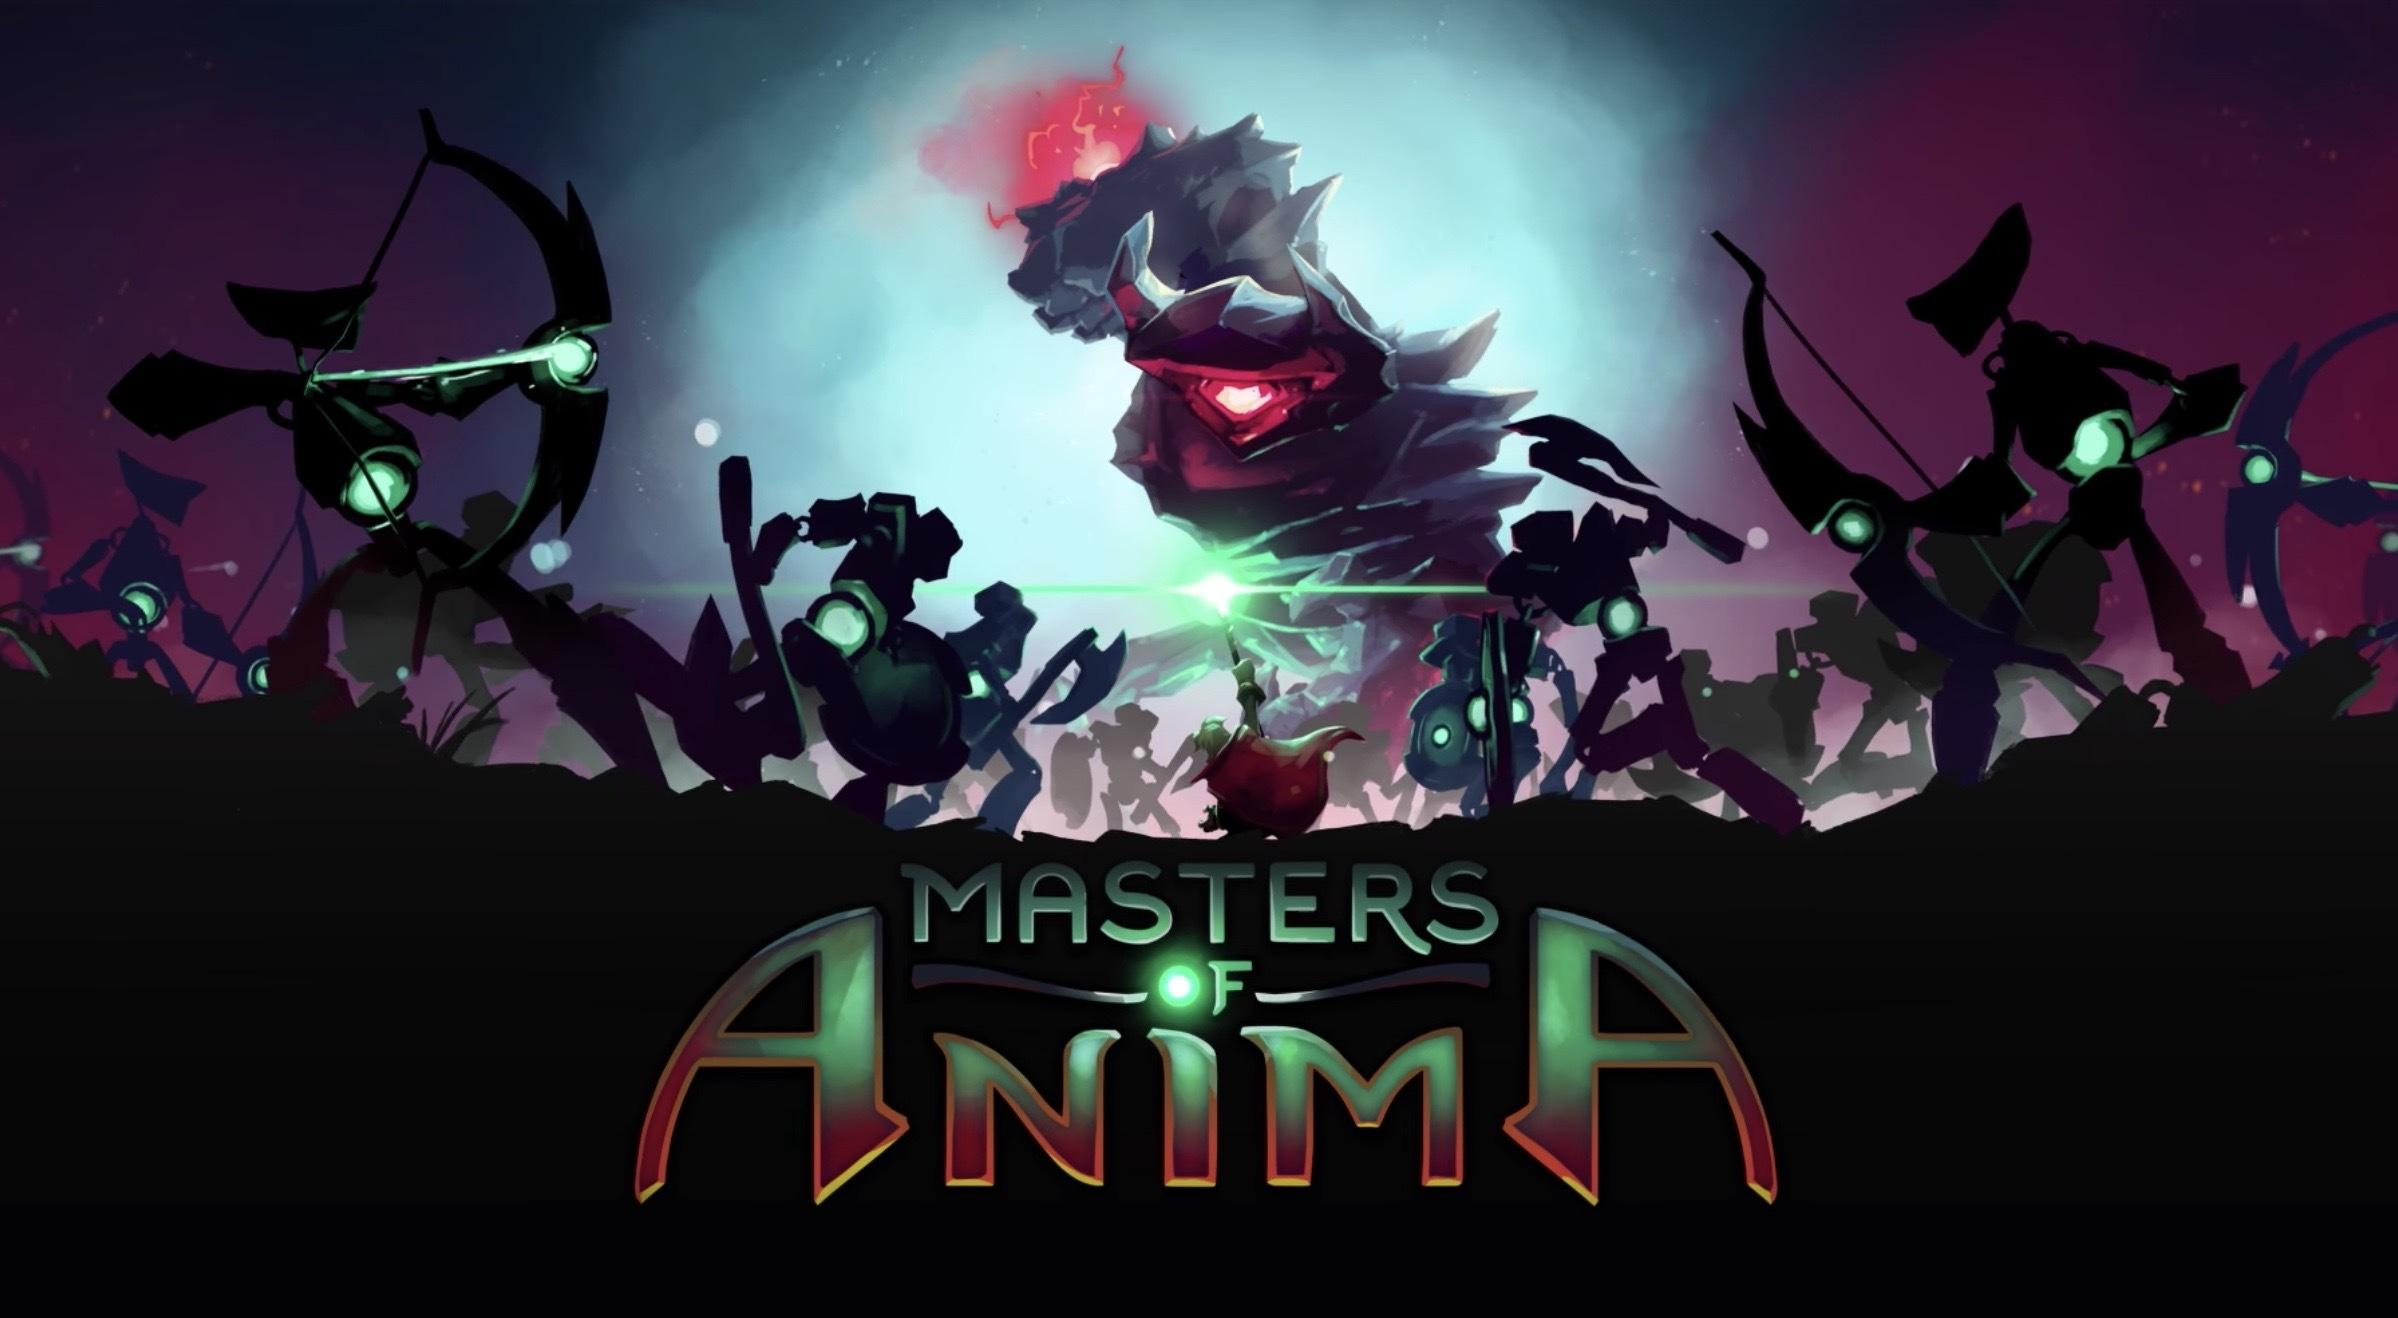 Action-Adventure Game 'Masters of Anima' Announced for Consoles